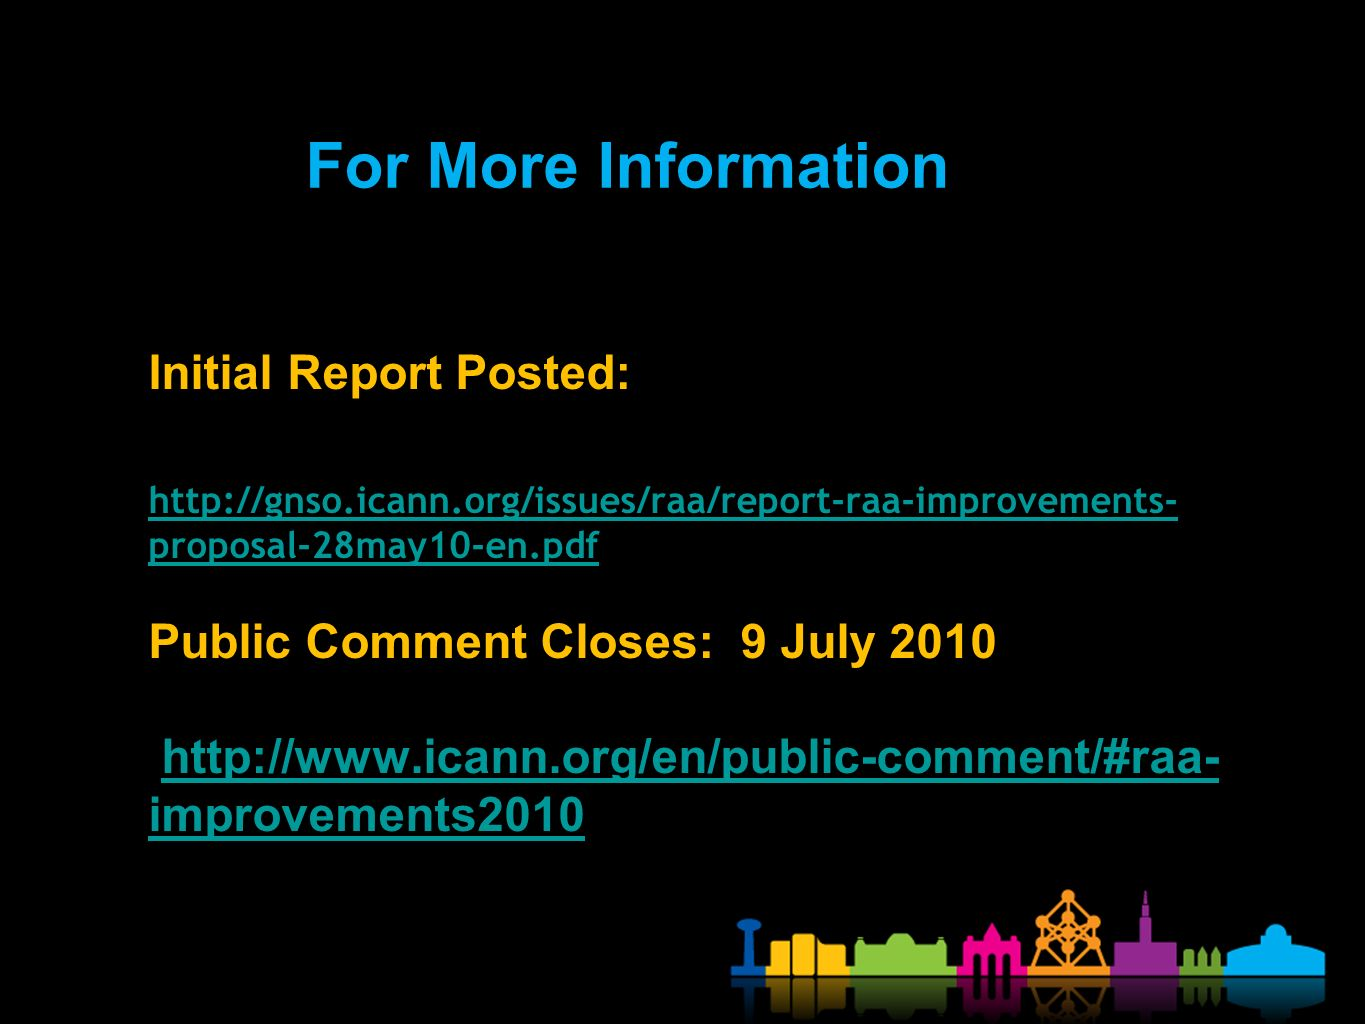 Initial Report Posted: http://gnso.icann.org/issues/raa/report-raa-improvements- proposal-28may10-en.pdf Public Comment Closes: 9 July 2010 http://www.icann.org/en/public-comment/#raa- improvements2010 http://gnso.icann.org/issues/raa/report-raa-improvements- proposal-28may10-en.pdfhttp://www.icann.org/en/public-comment/#raa- improvements2010 For More Information